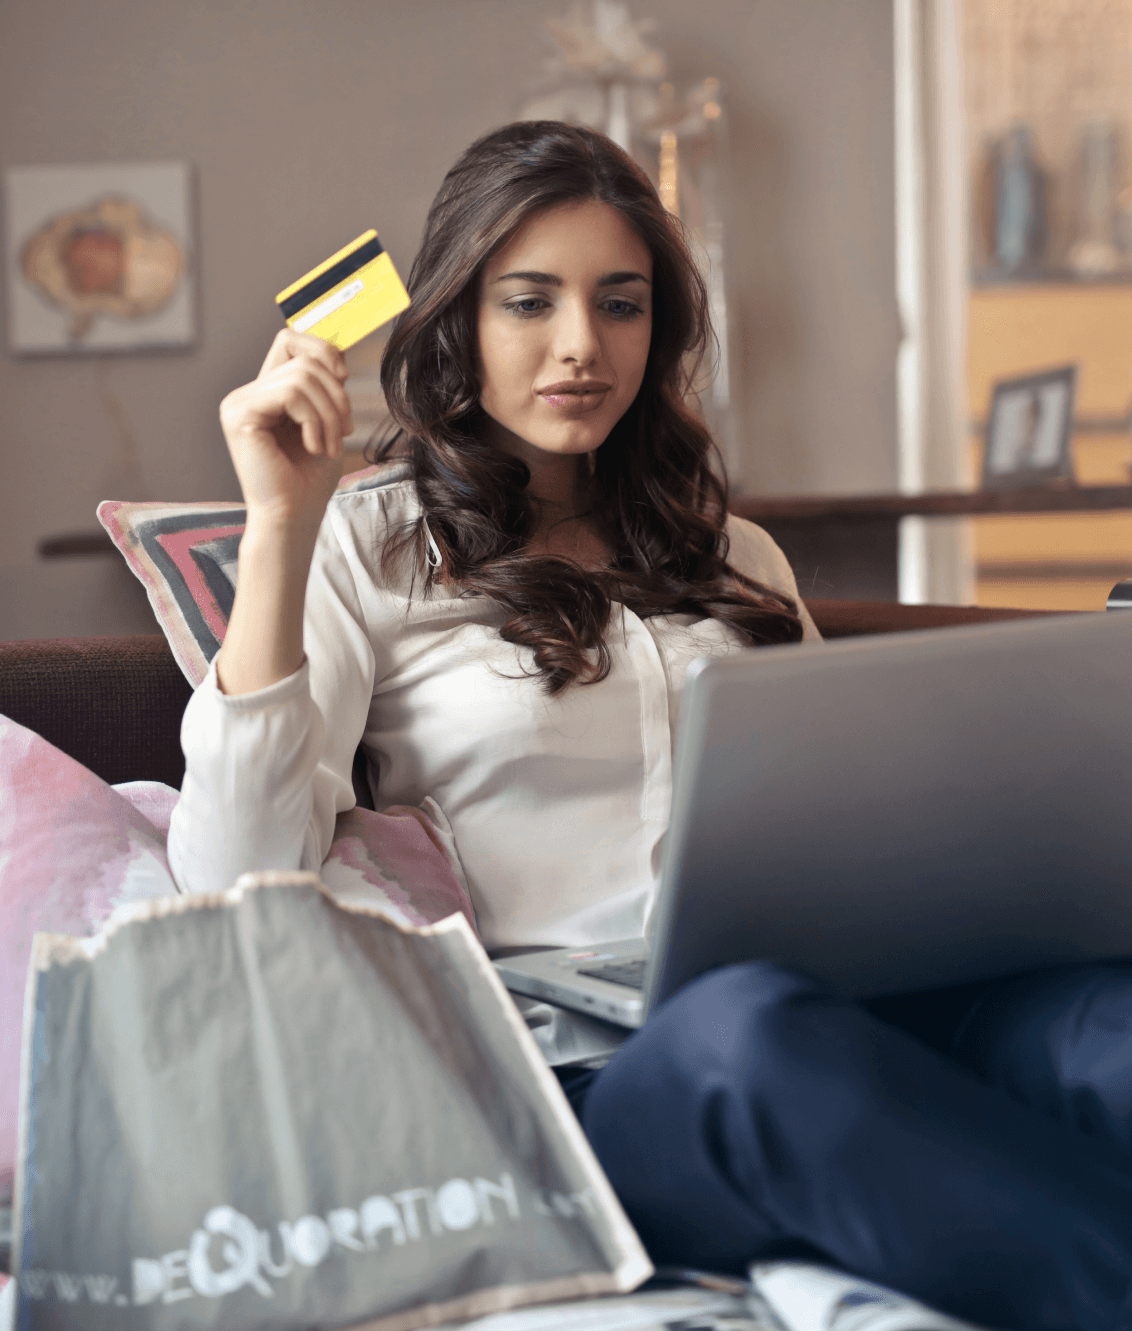 online shopping in the online store